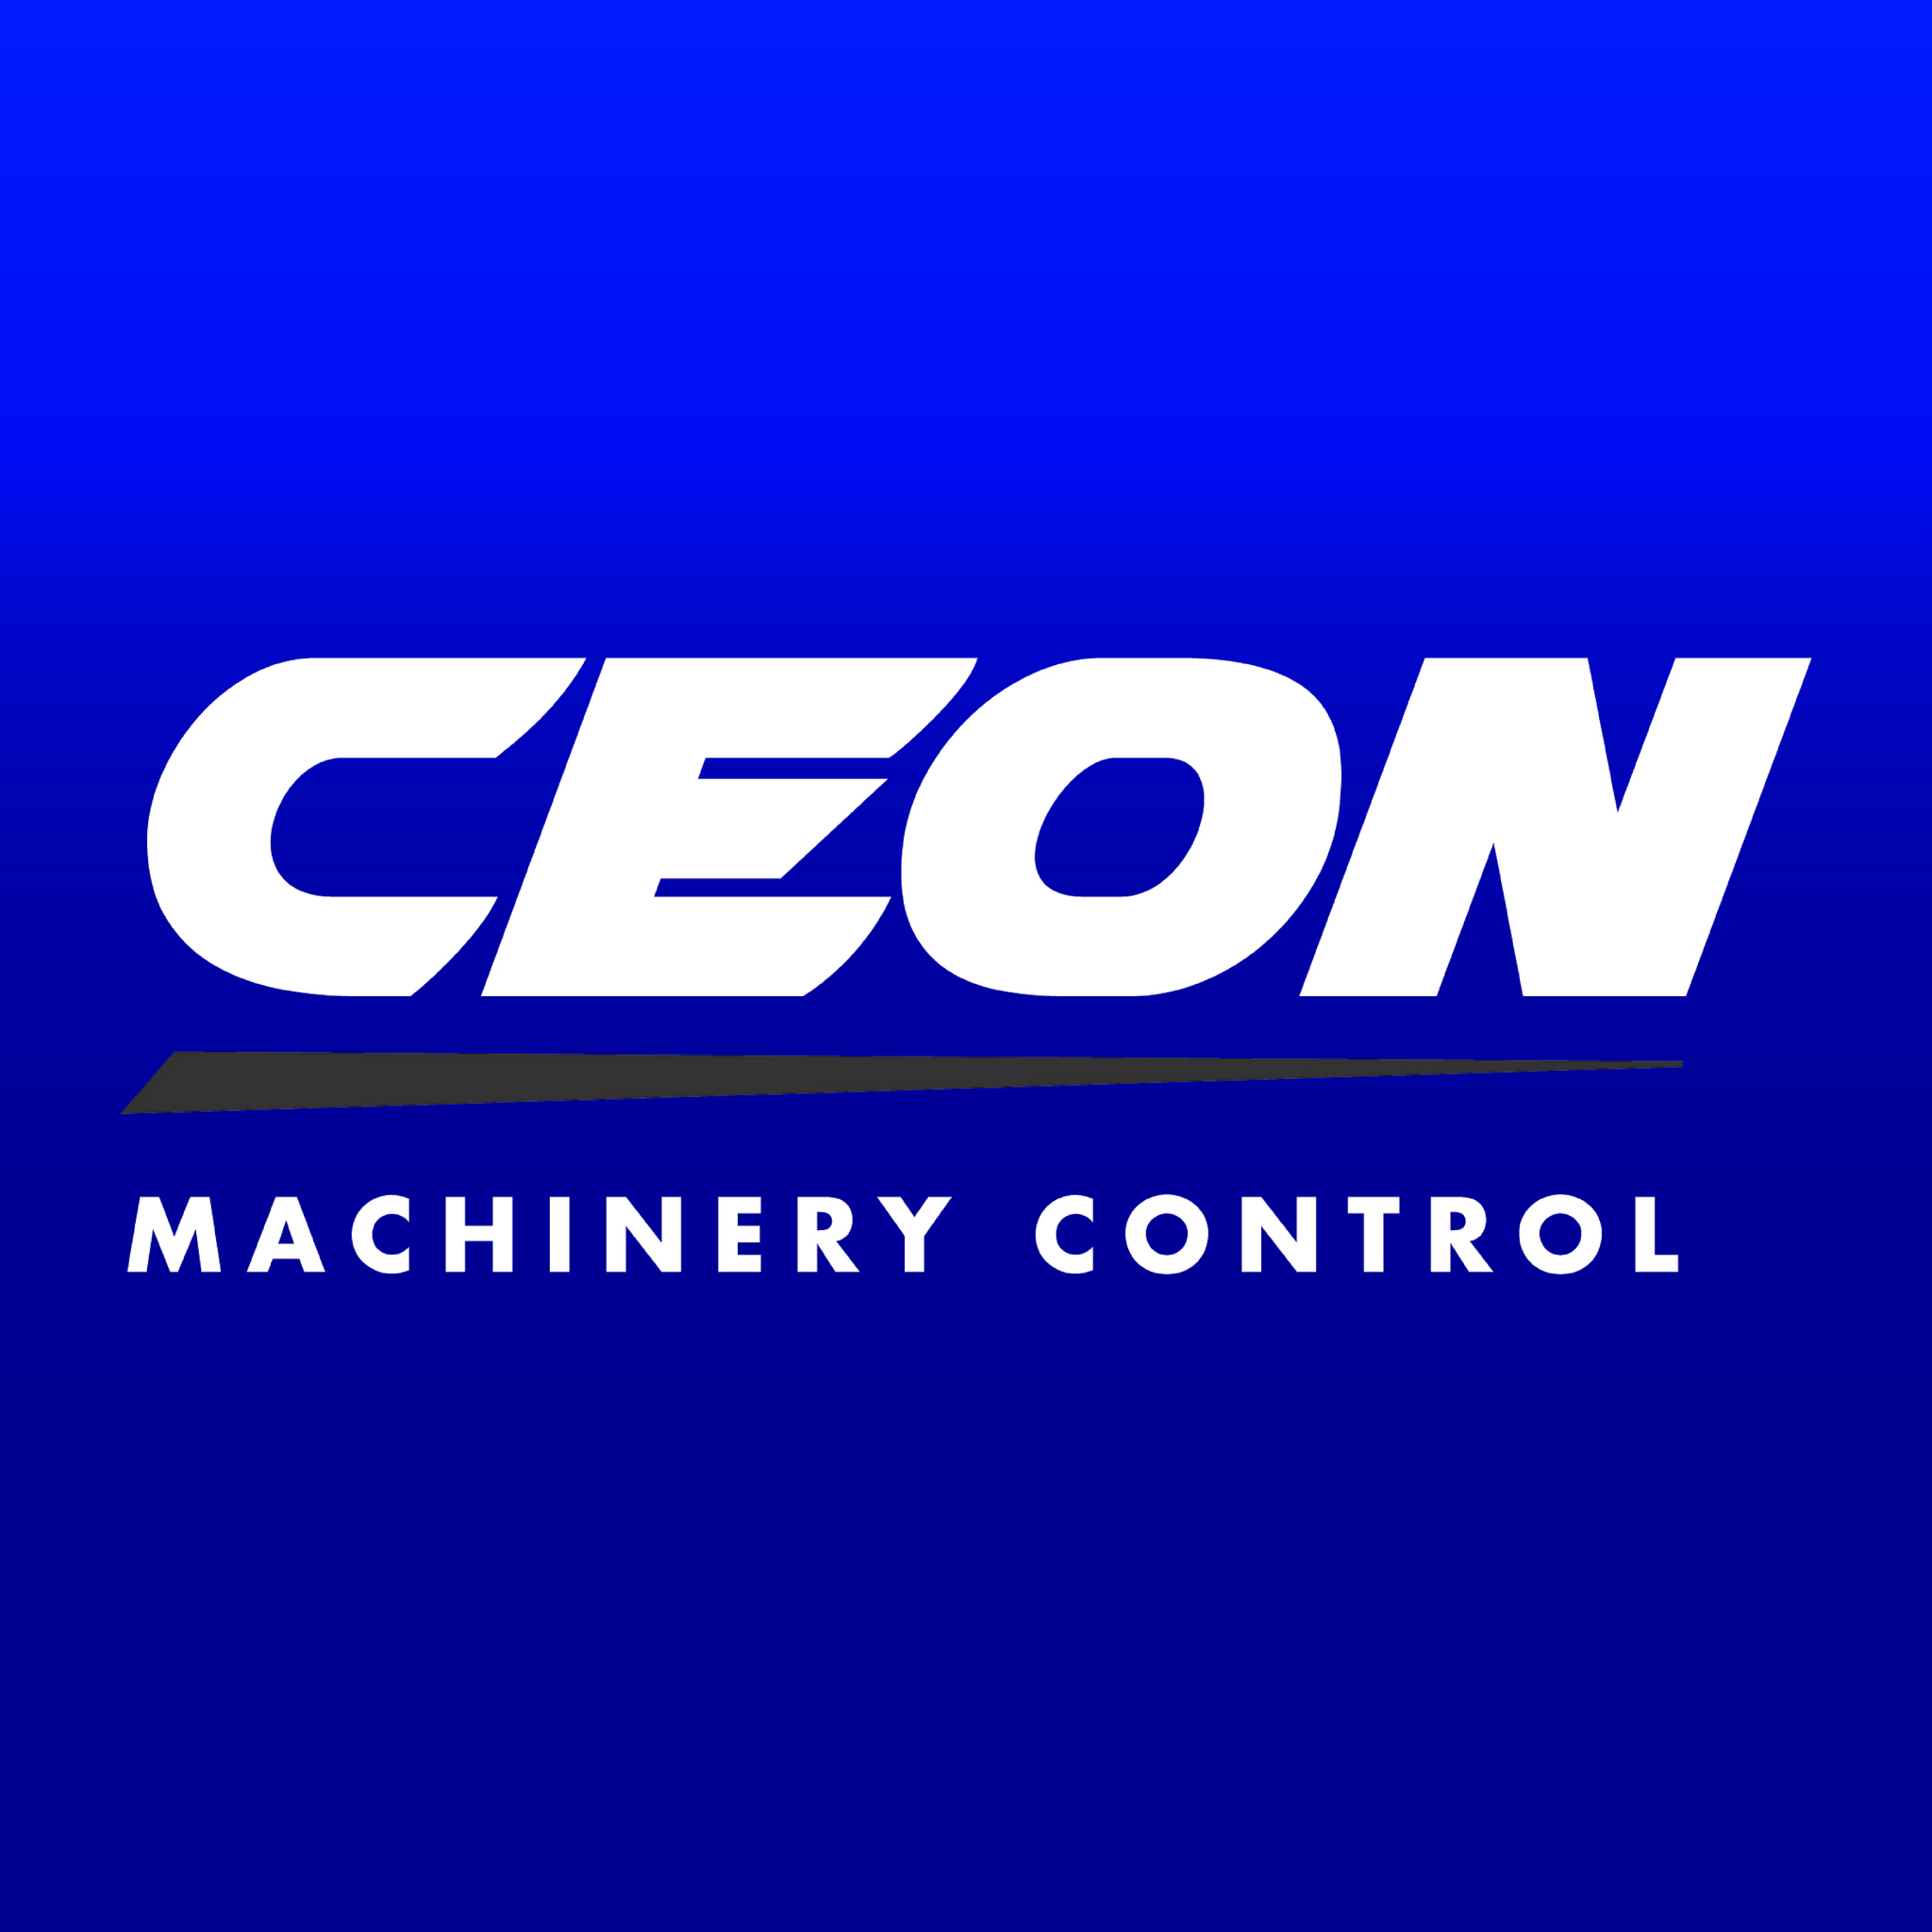 Ceon Machinery Control Ltd